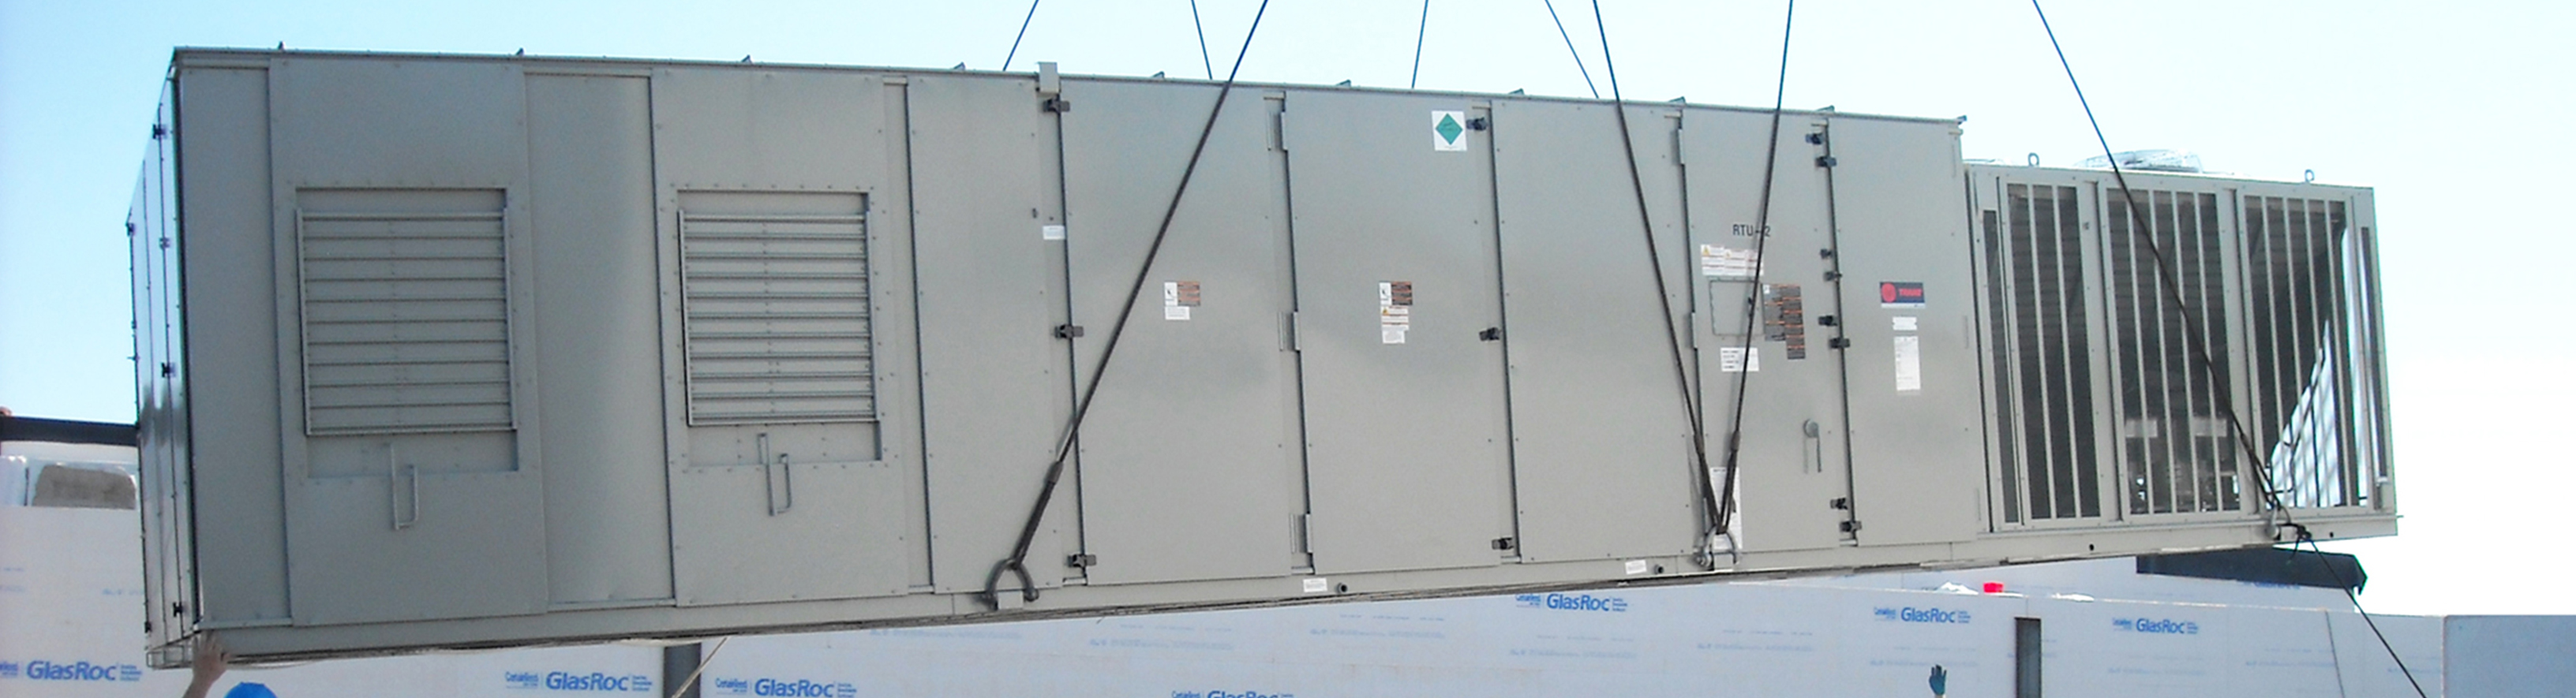 Commercial Rooftop HVAC Systems